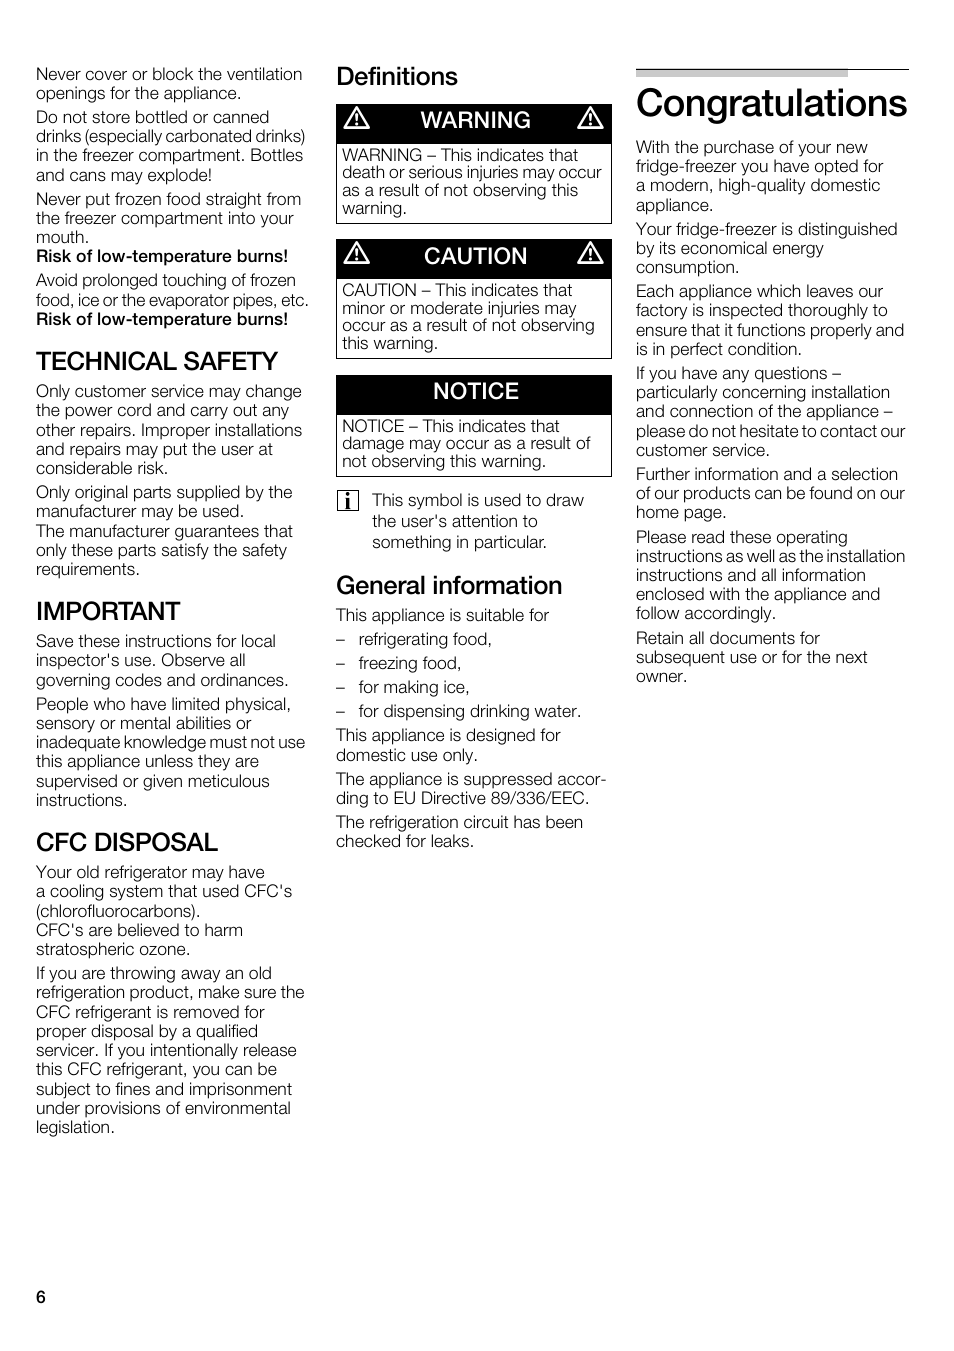 Technical safety, Important, Cfc disposal | Definitions, General  information, Warning, Caution